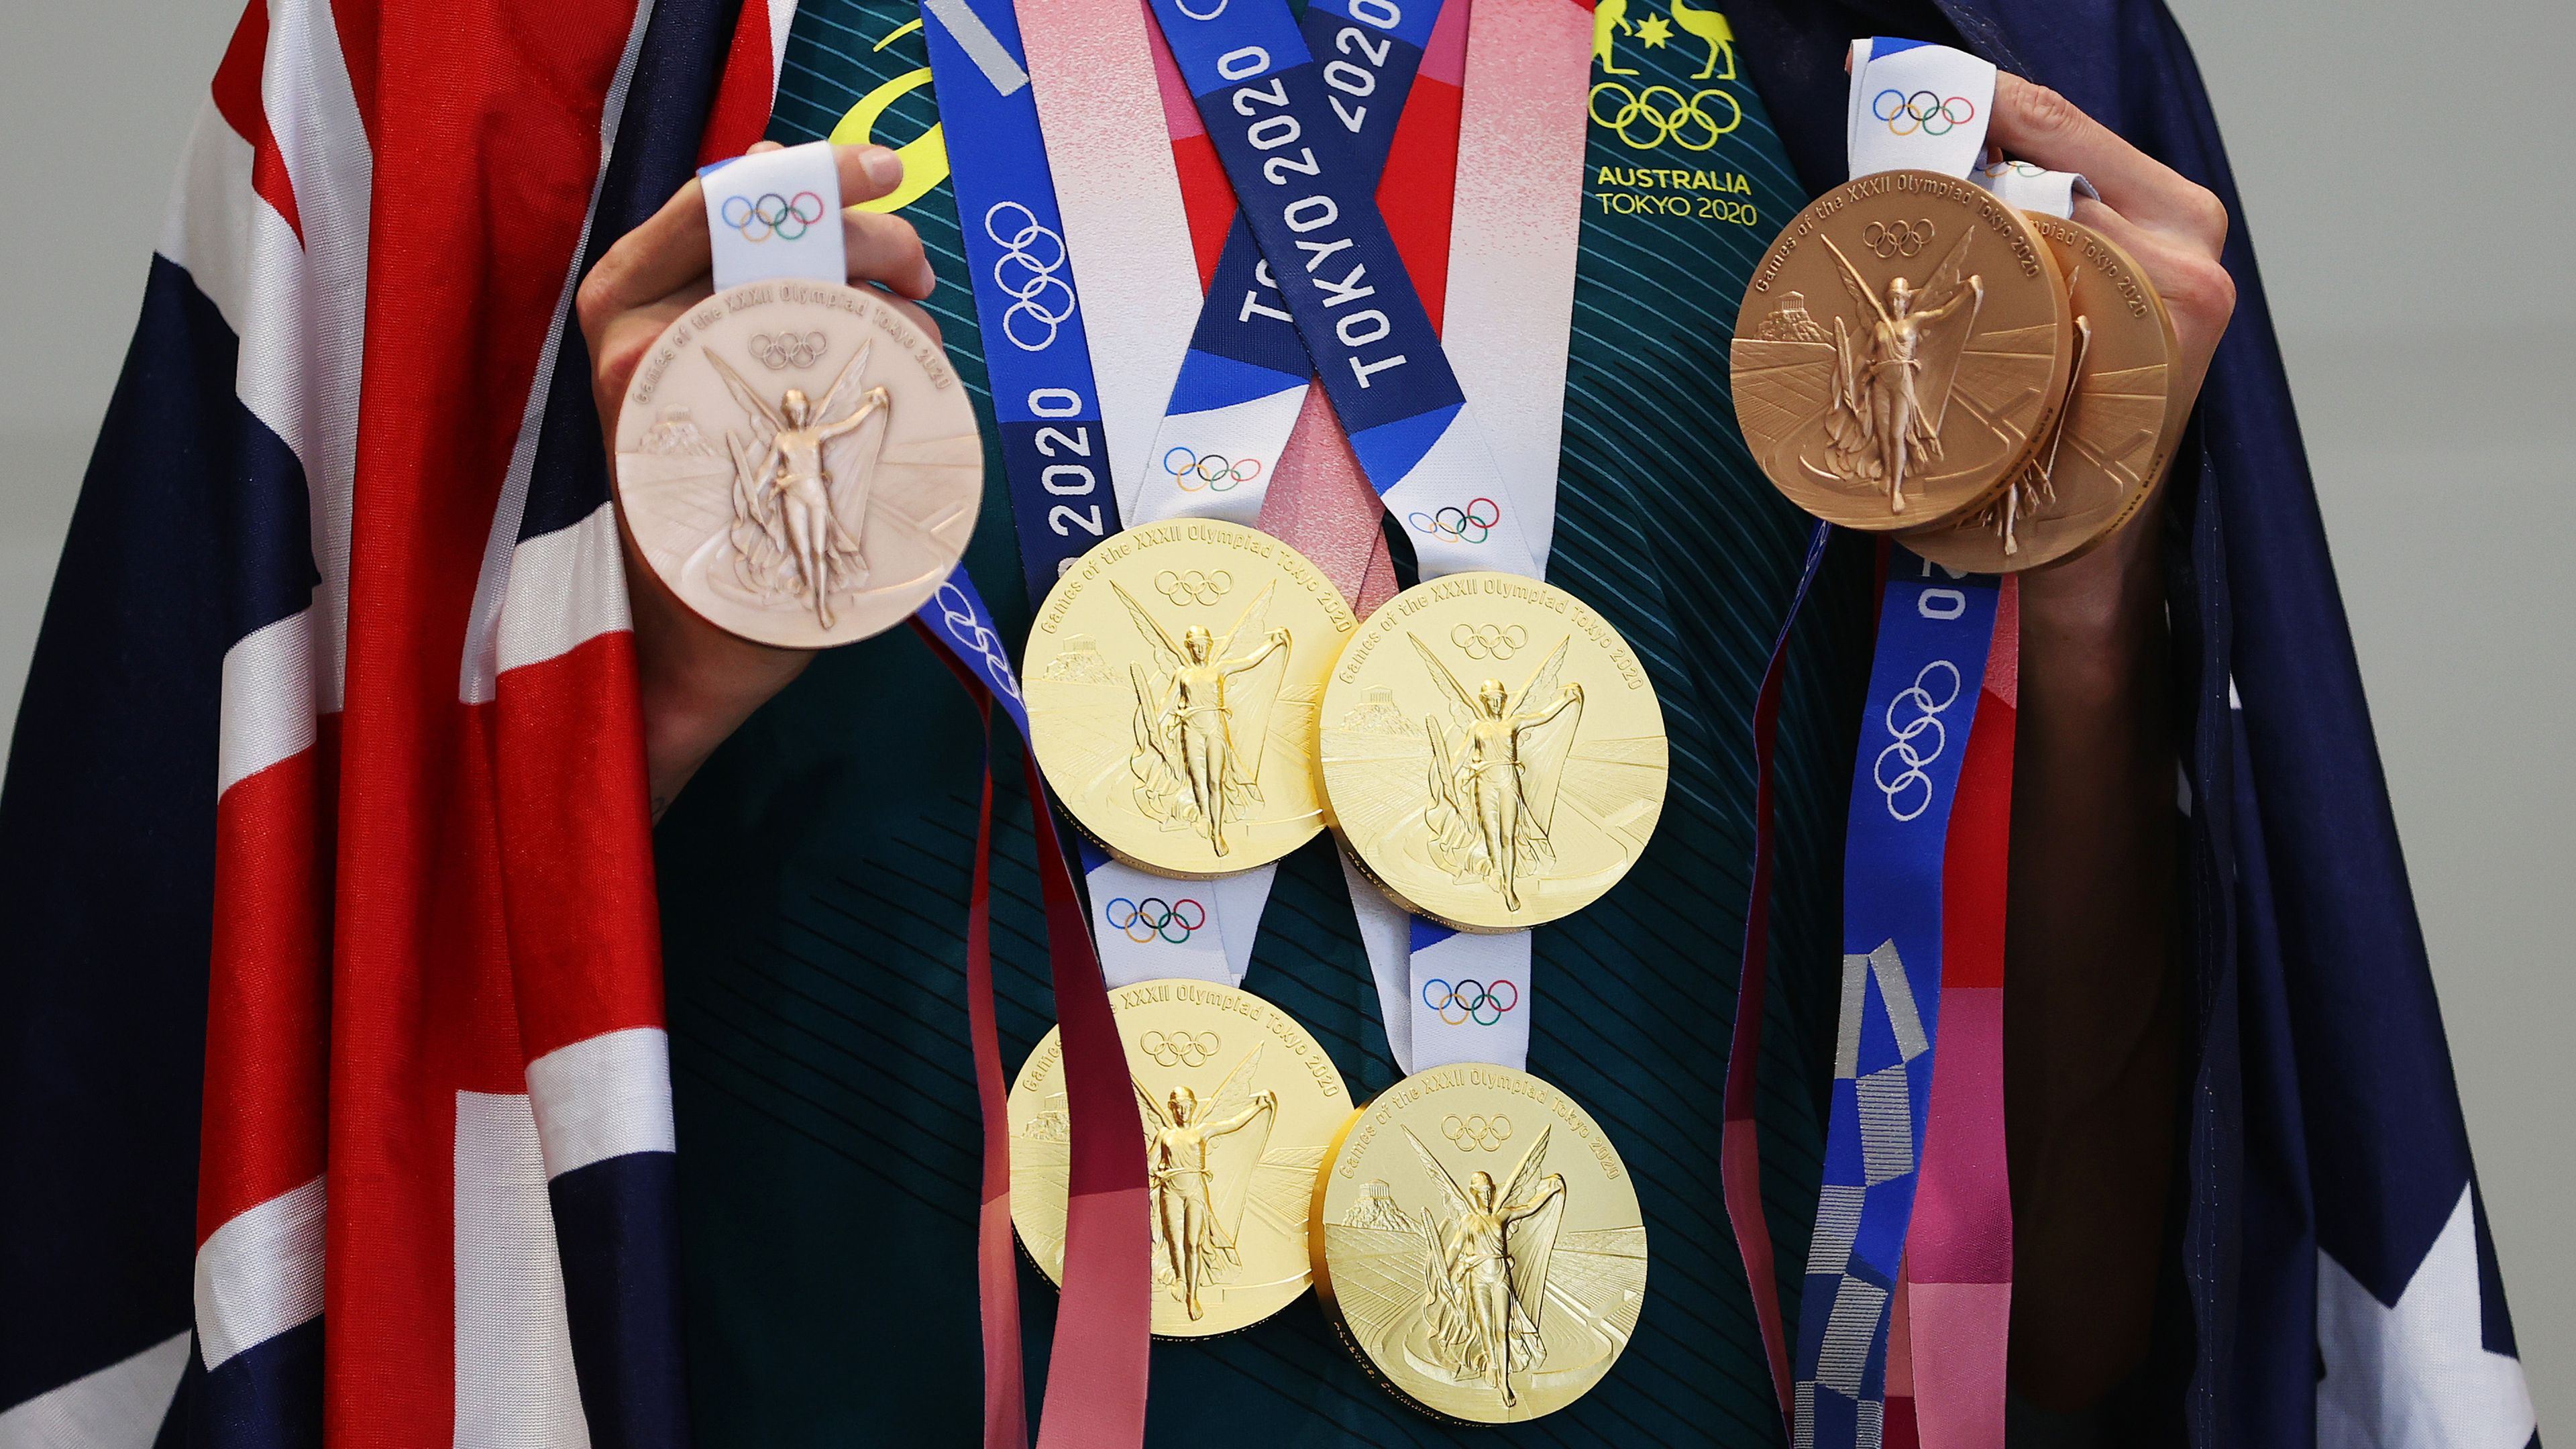 Tokyo Olympics 2021: USA edges China on final day of Games to claim medal crown, Australia finishes in sixth